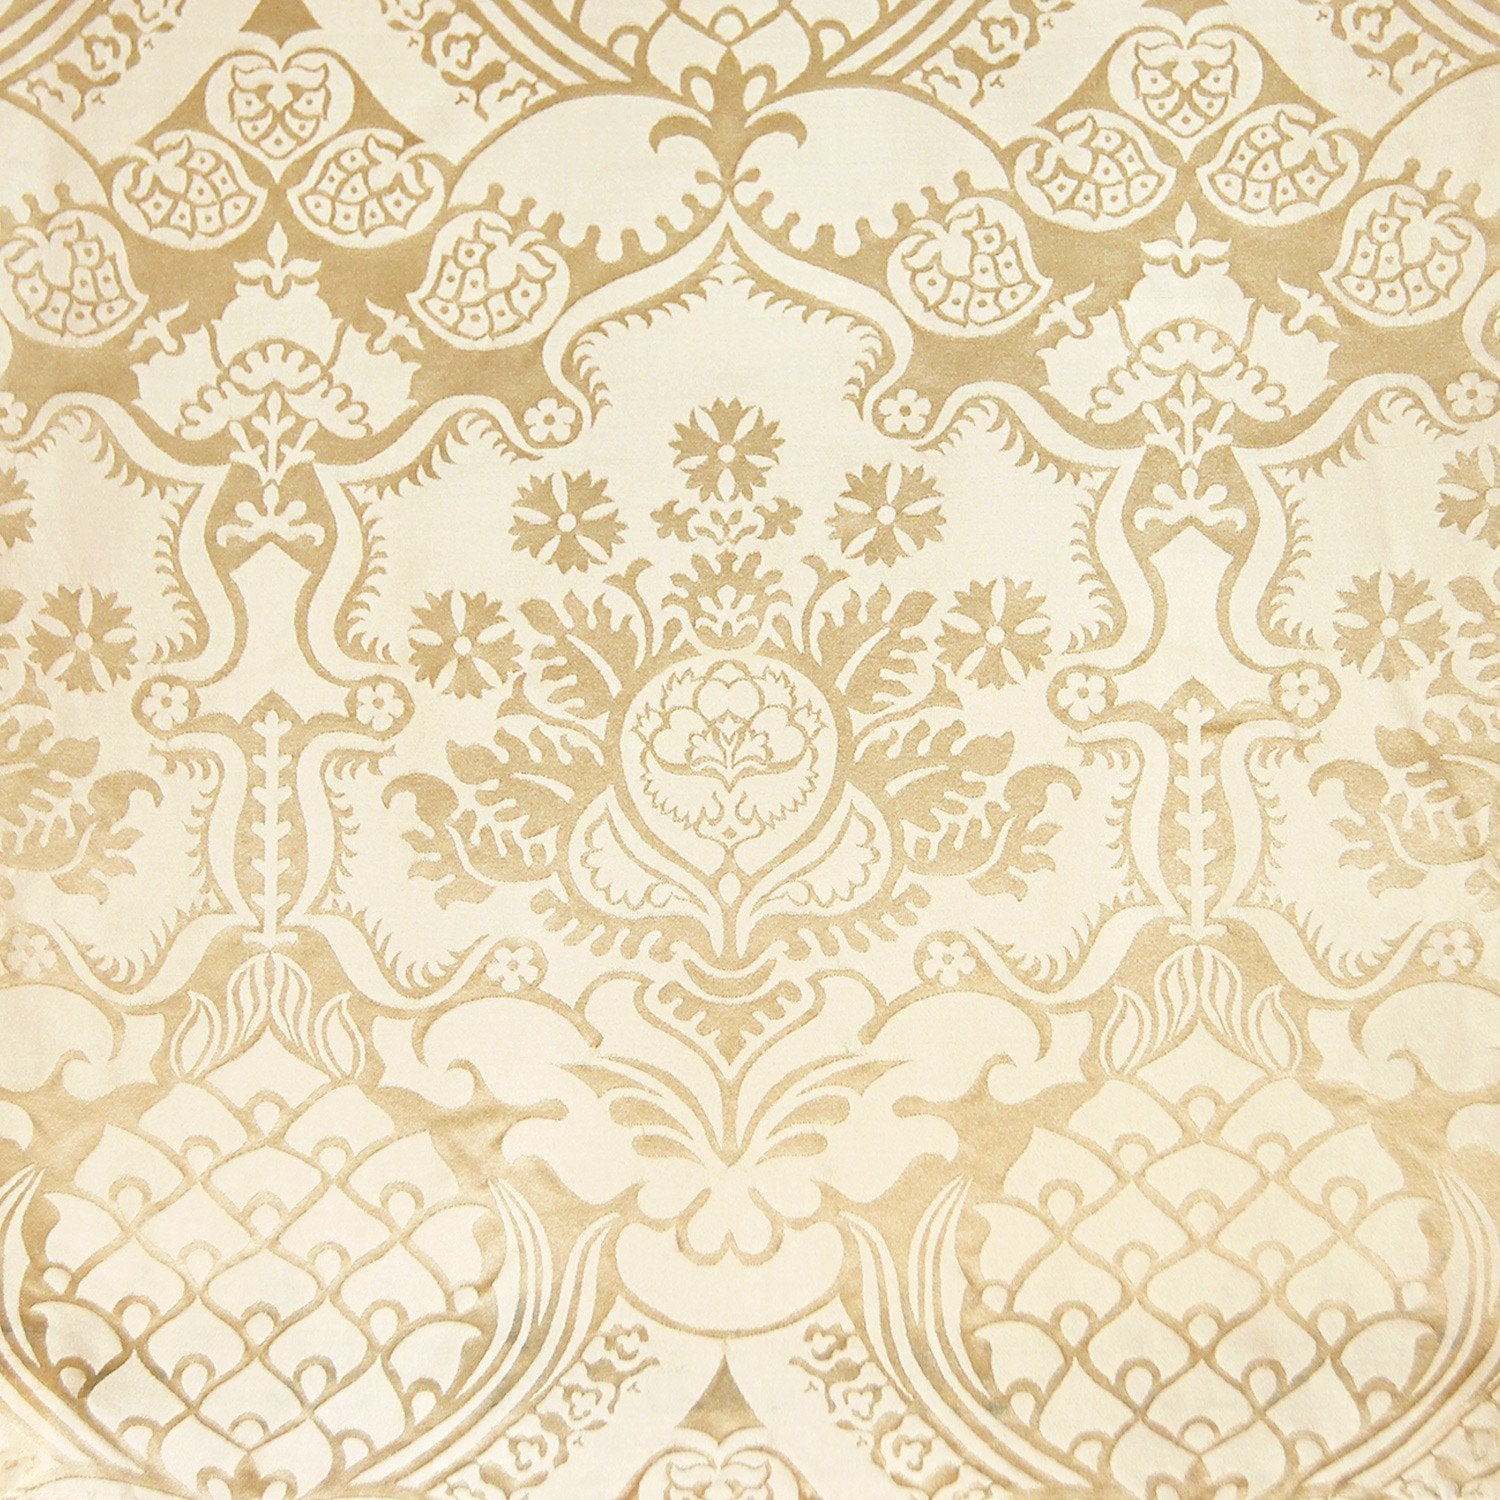 Comper Cathedral Silk Damask - Cream - Watts & Co. (international)